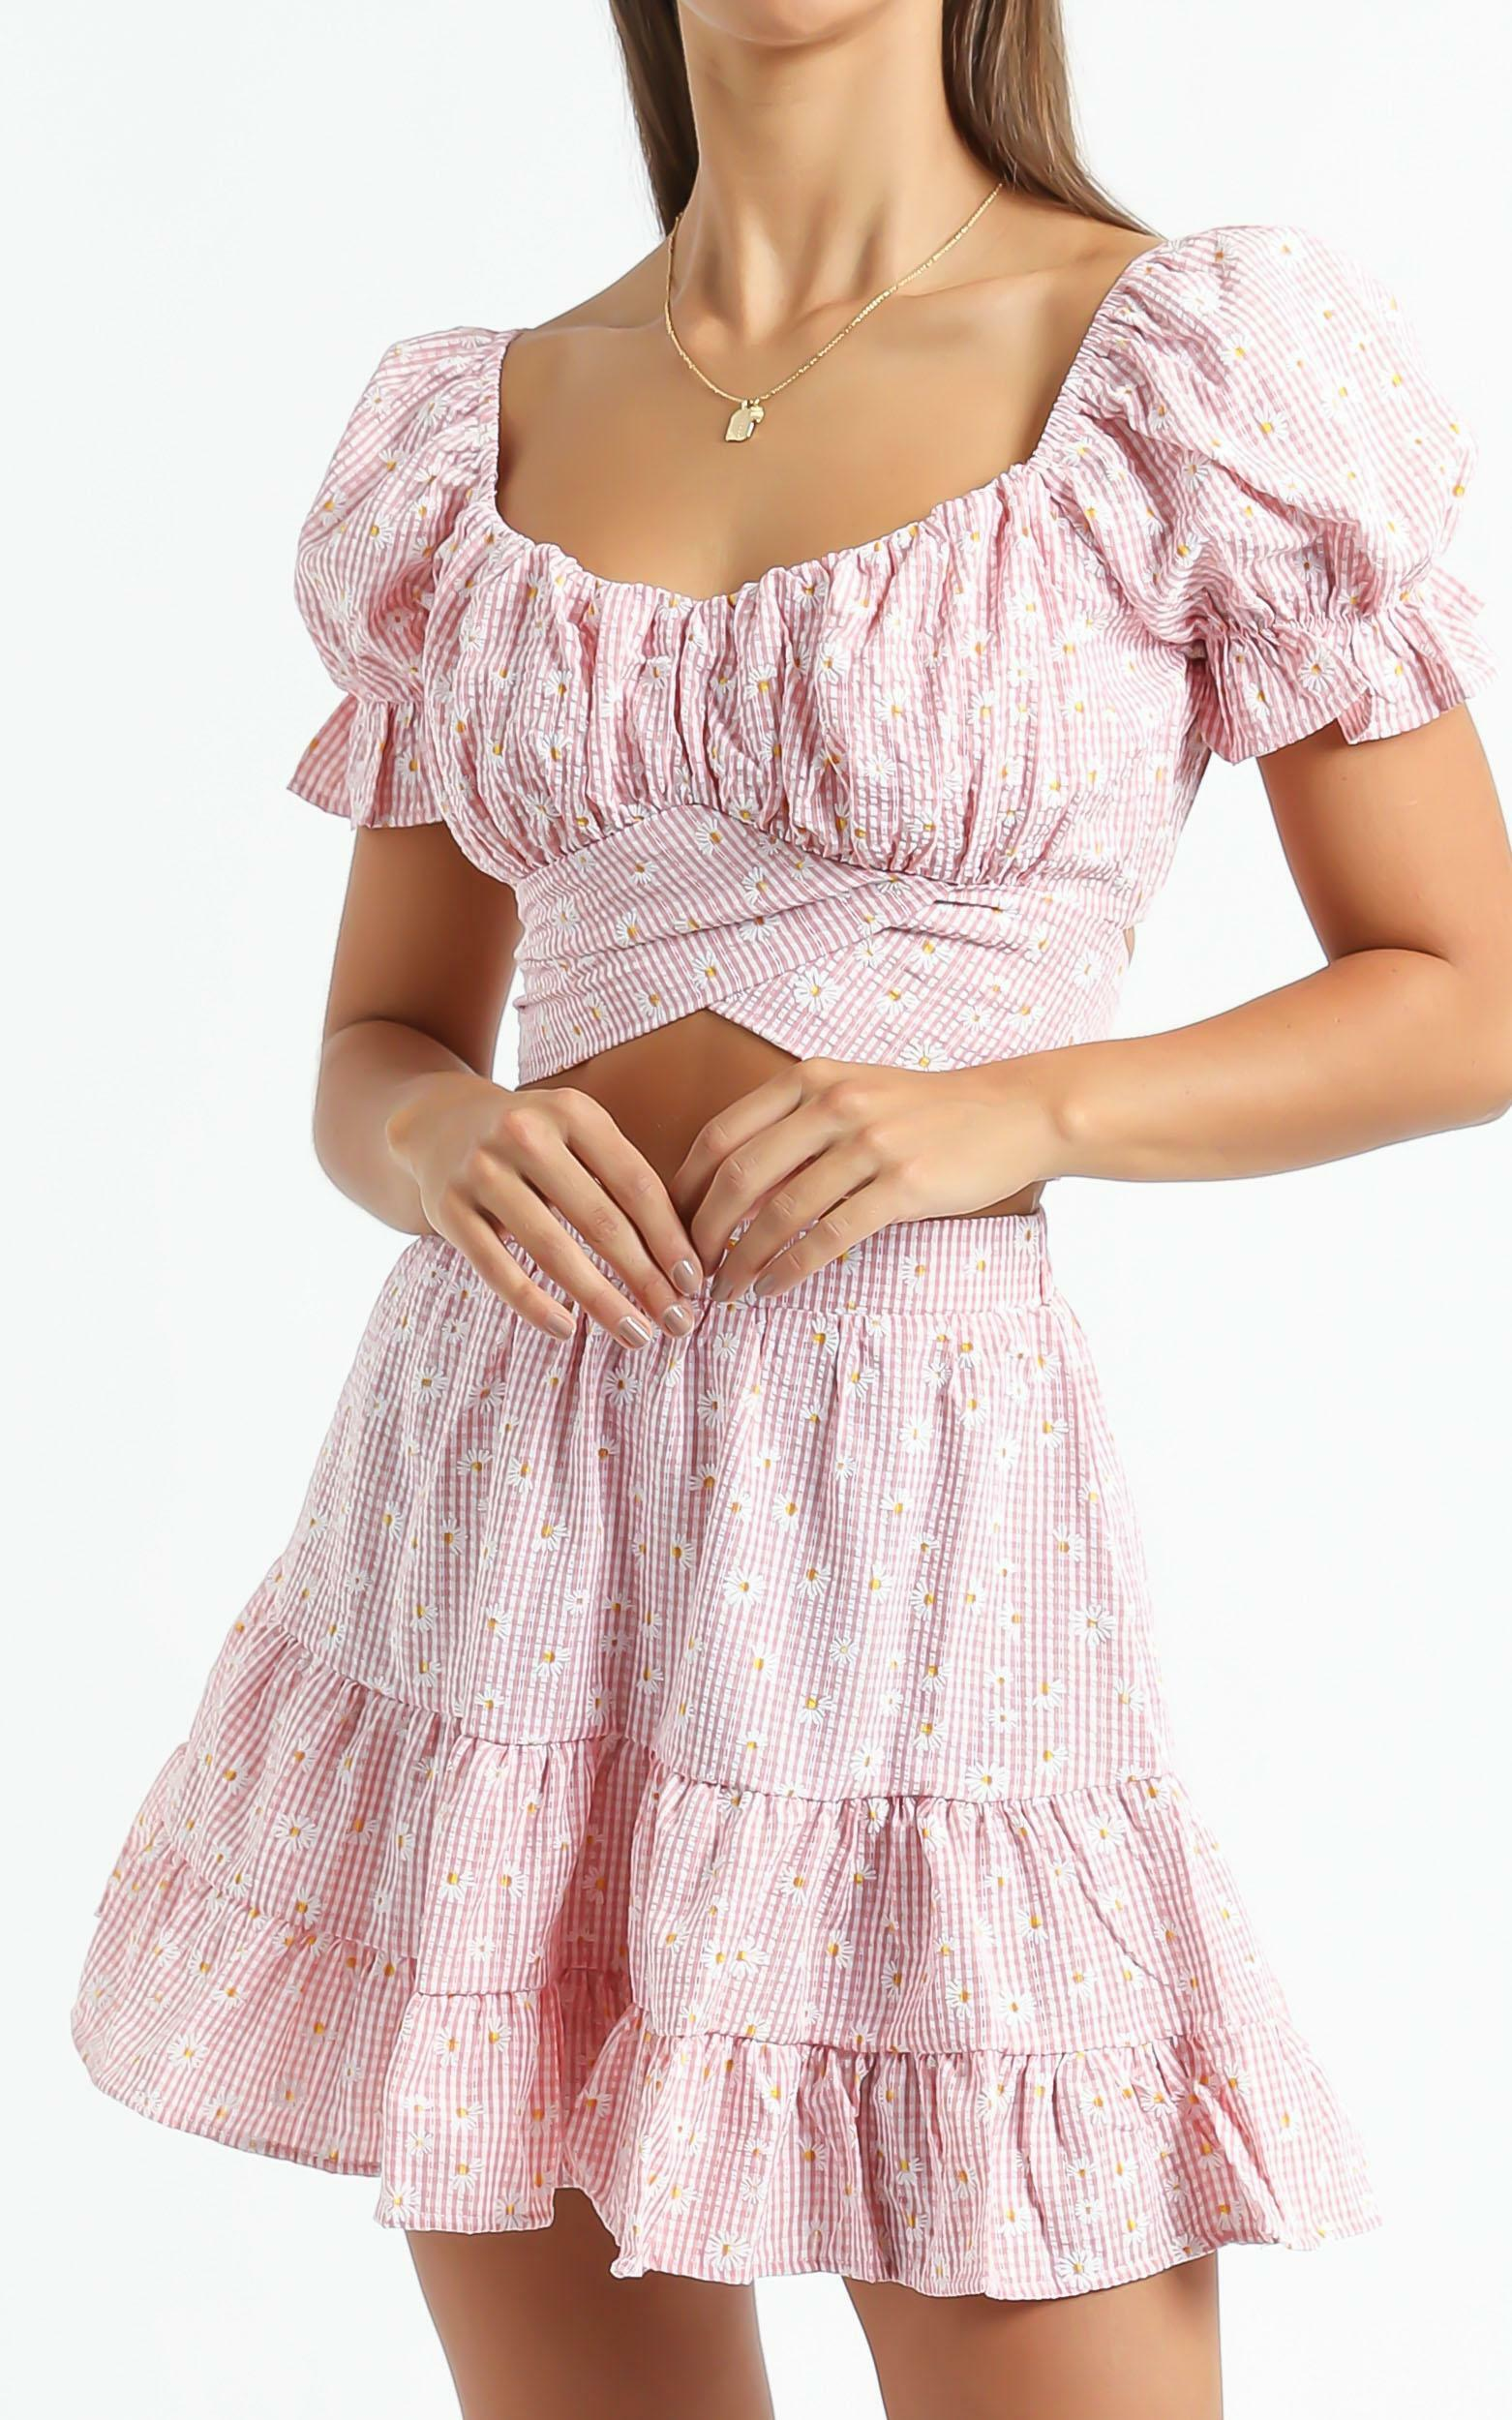 Polly Two Piece Set In Red Gingham - 6 (XS), PNK4, hi-res image number null